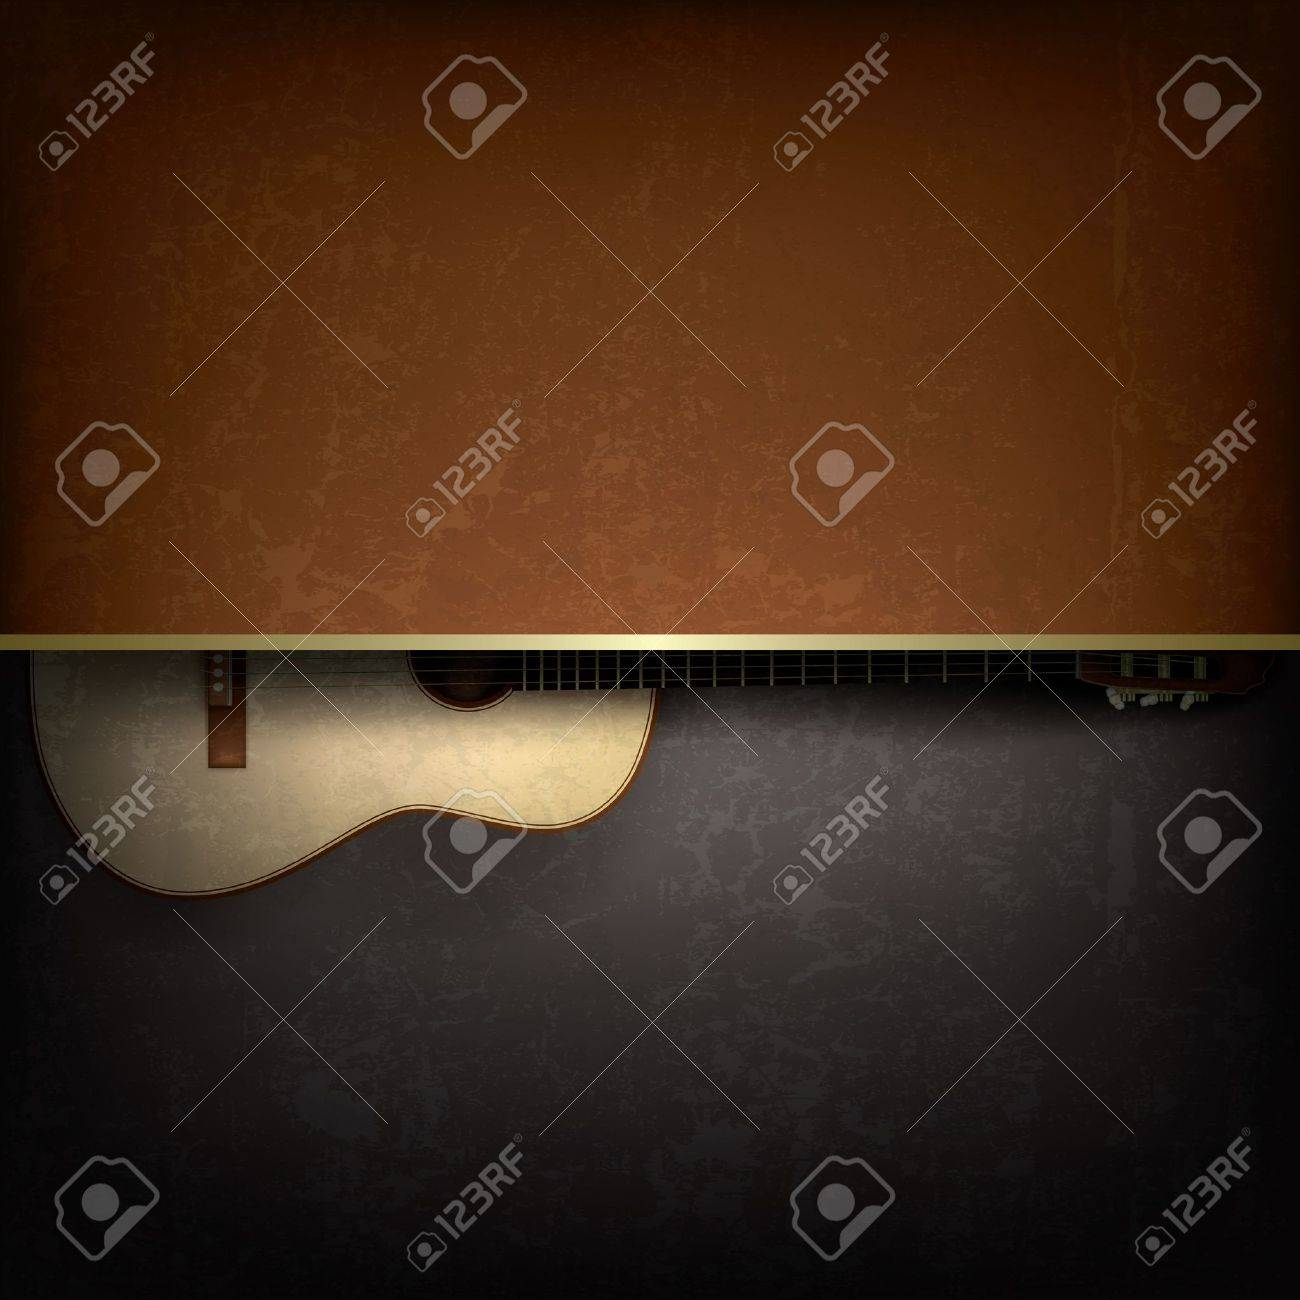 Abstract grunge music background with acoustic guitar Stock Vector - 15906691